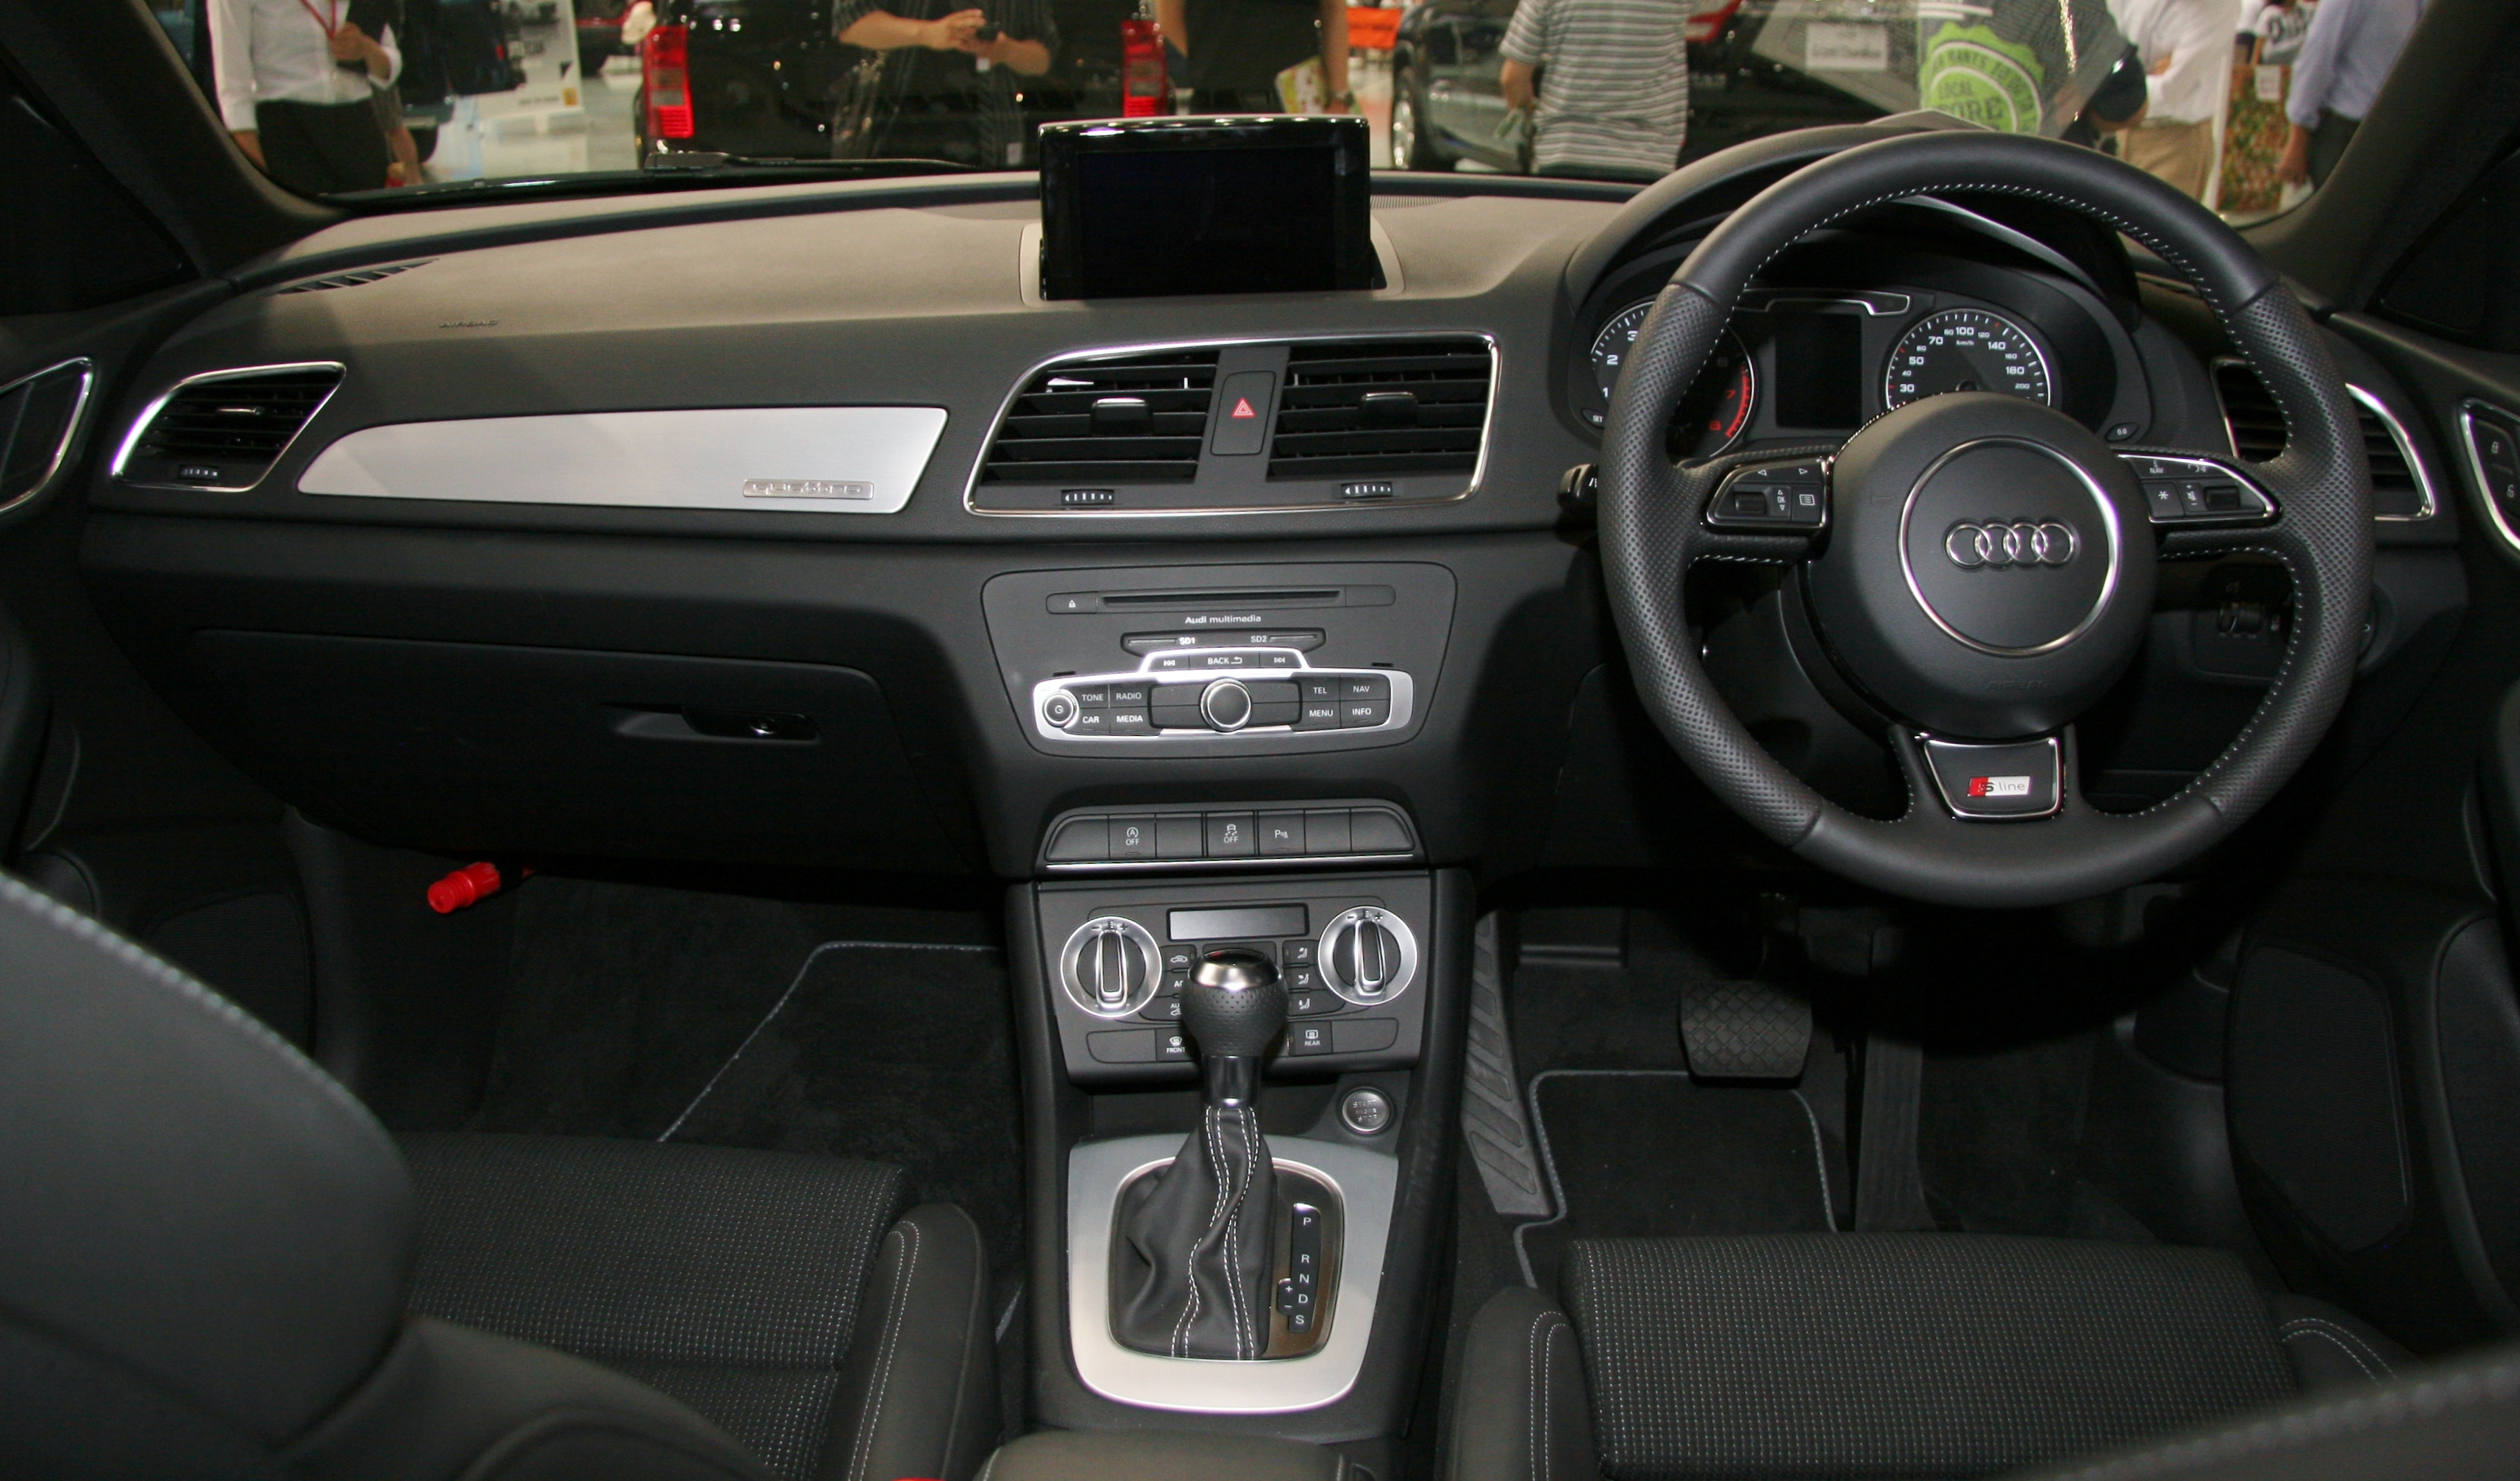 audi q3 2012 interior images galleries with a bite. Black Bedroom Furniture Sets. Home Design Ideas